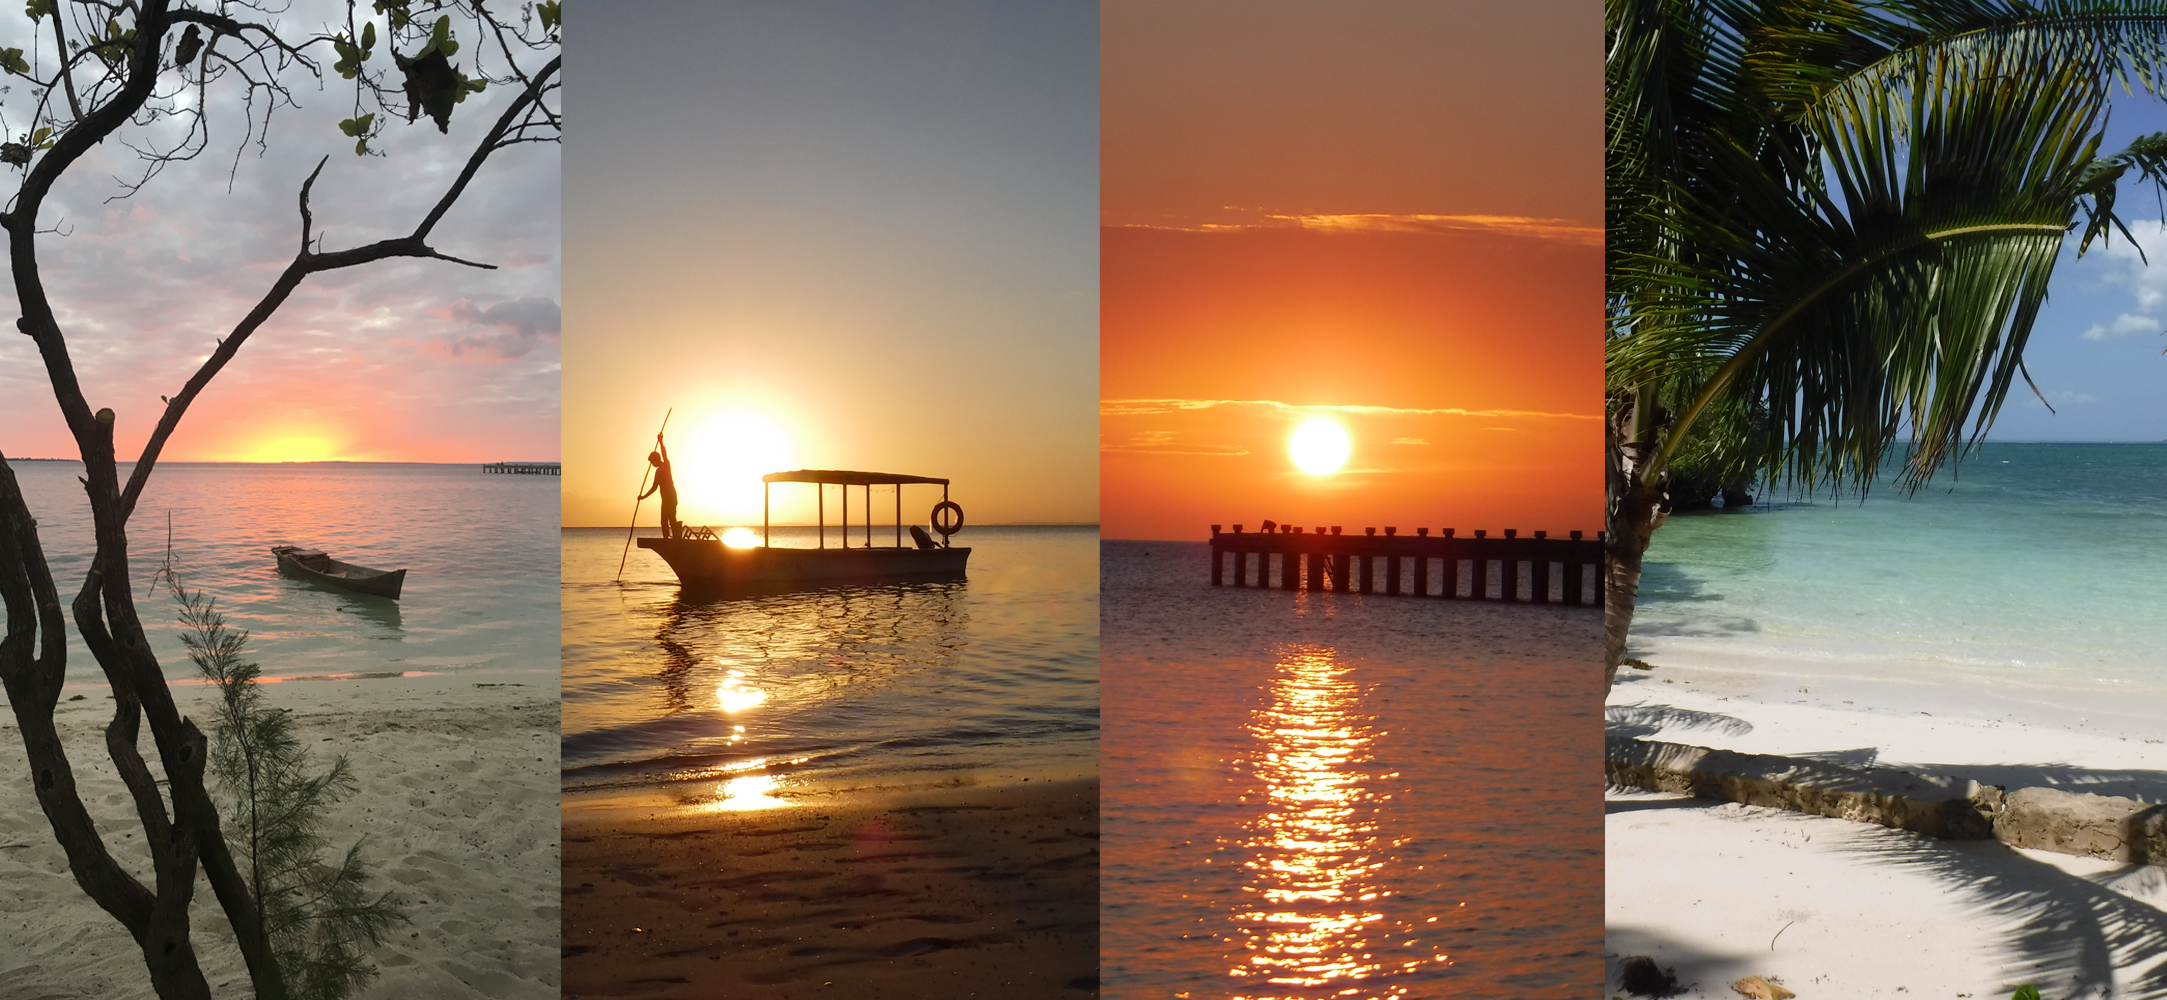 A collage of Kitty's photos of Holga Island showing beautiful beaches and sunsets